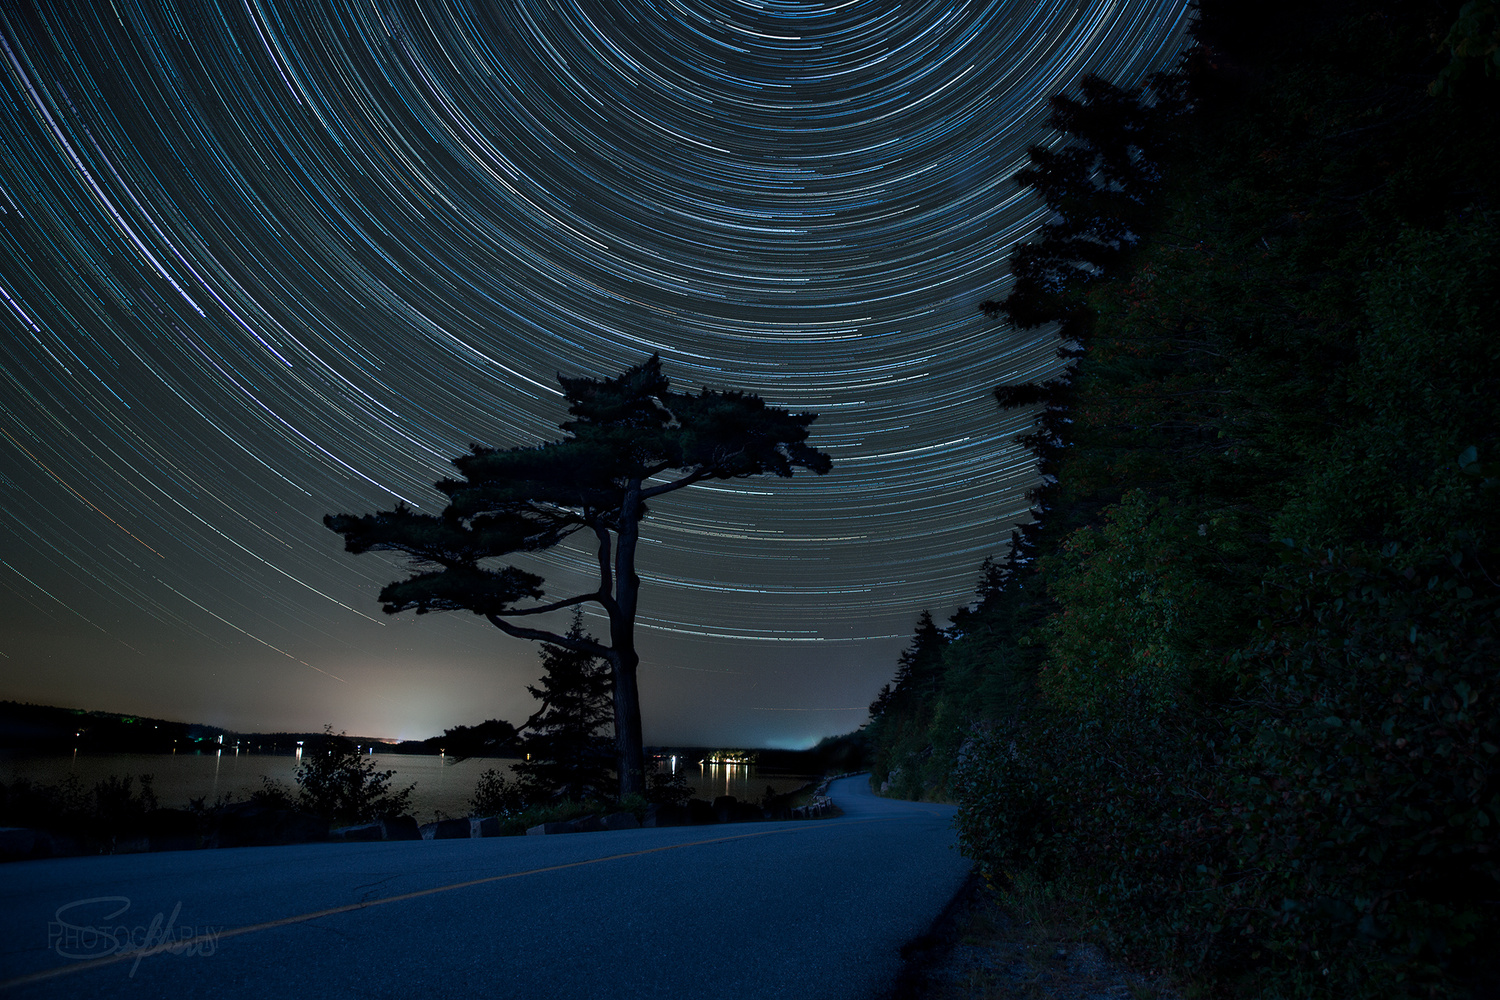 Road to the Stars by Chris Siefken